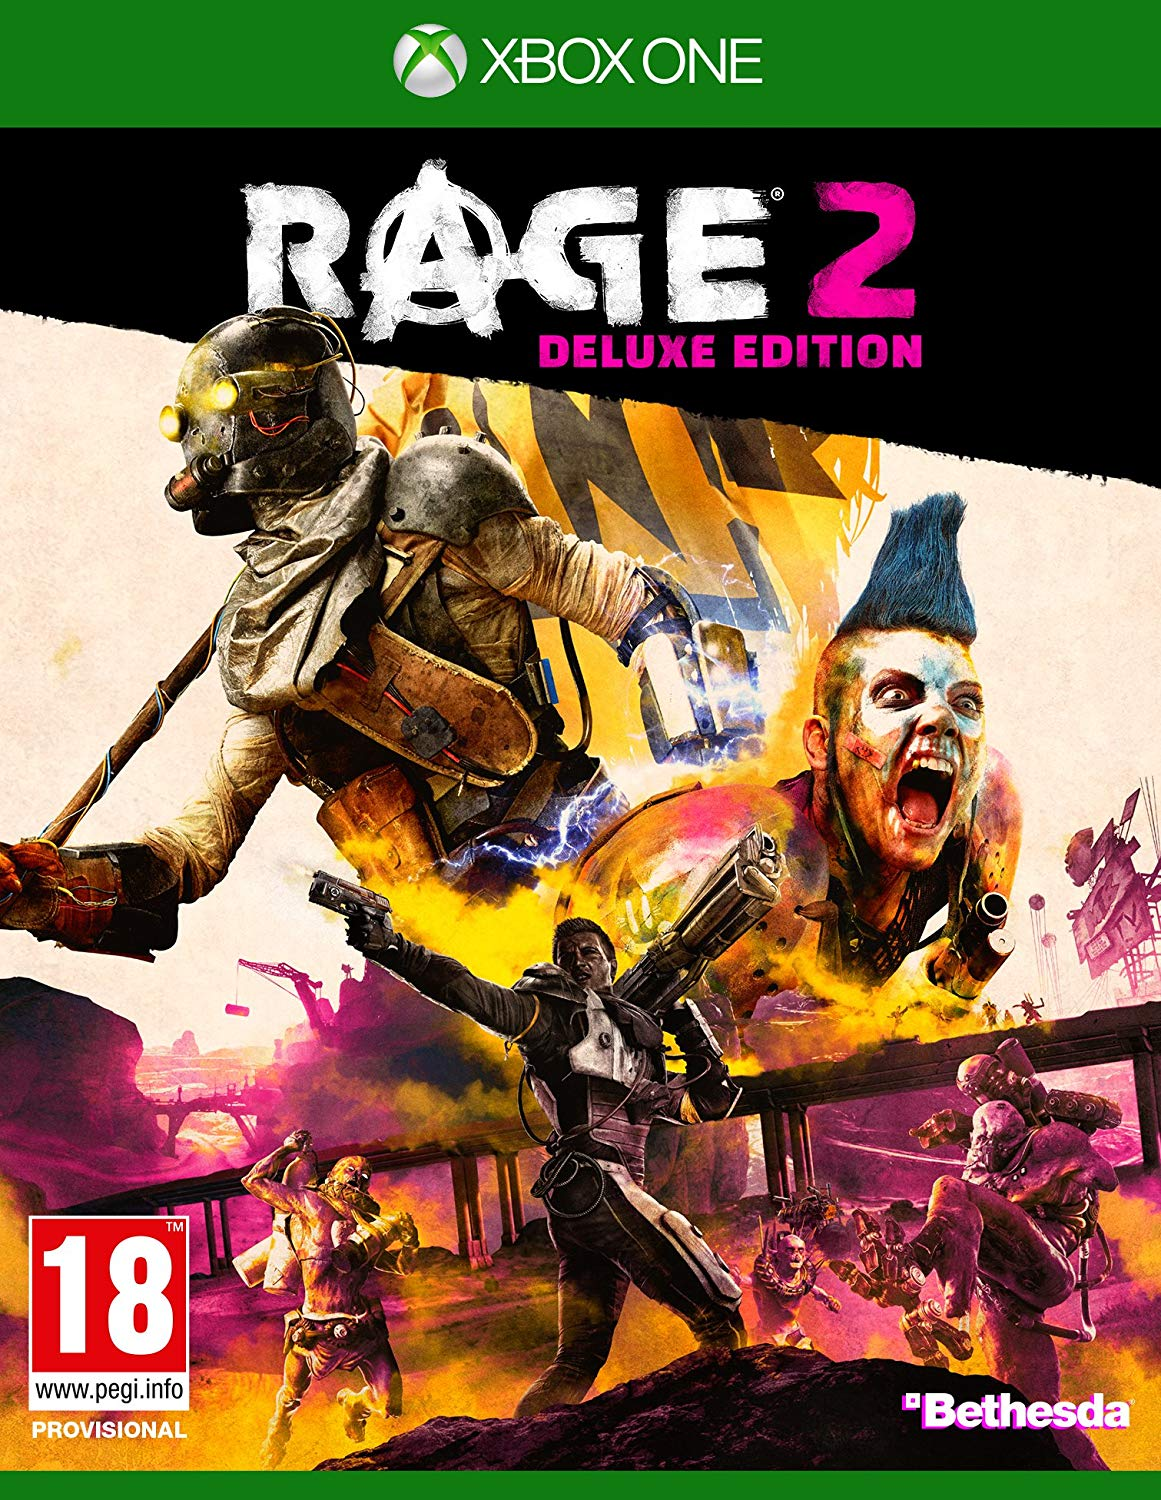 RAGE 2 - Wingstick Deluxe Edition (XONE)